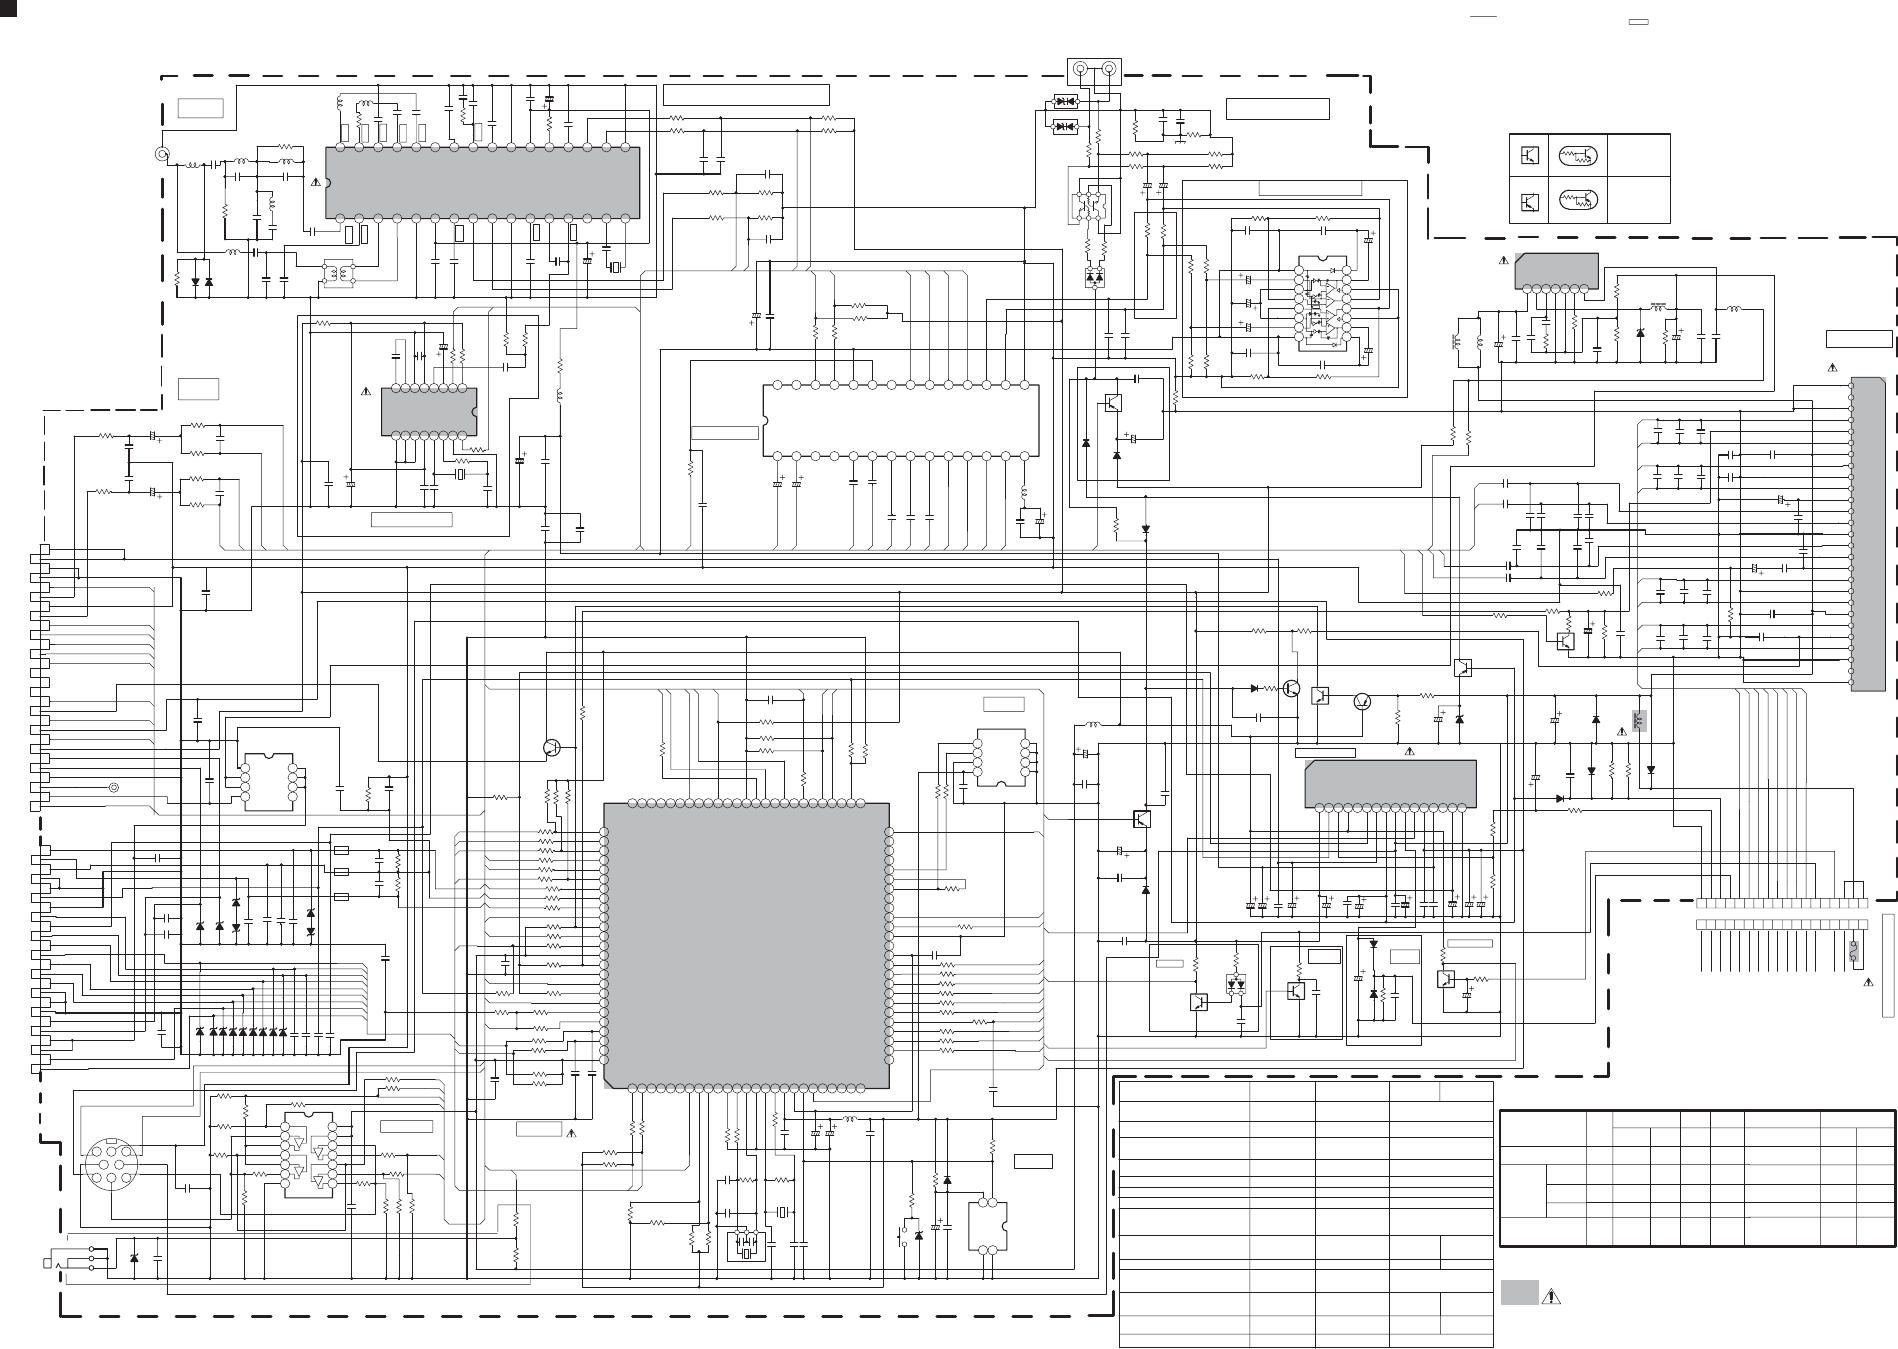 Ma442 Kd S36 Jvc A605 R600 R601 R604 R605 R606 Wiring Diagram S16 Besides Car Stereo Also